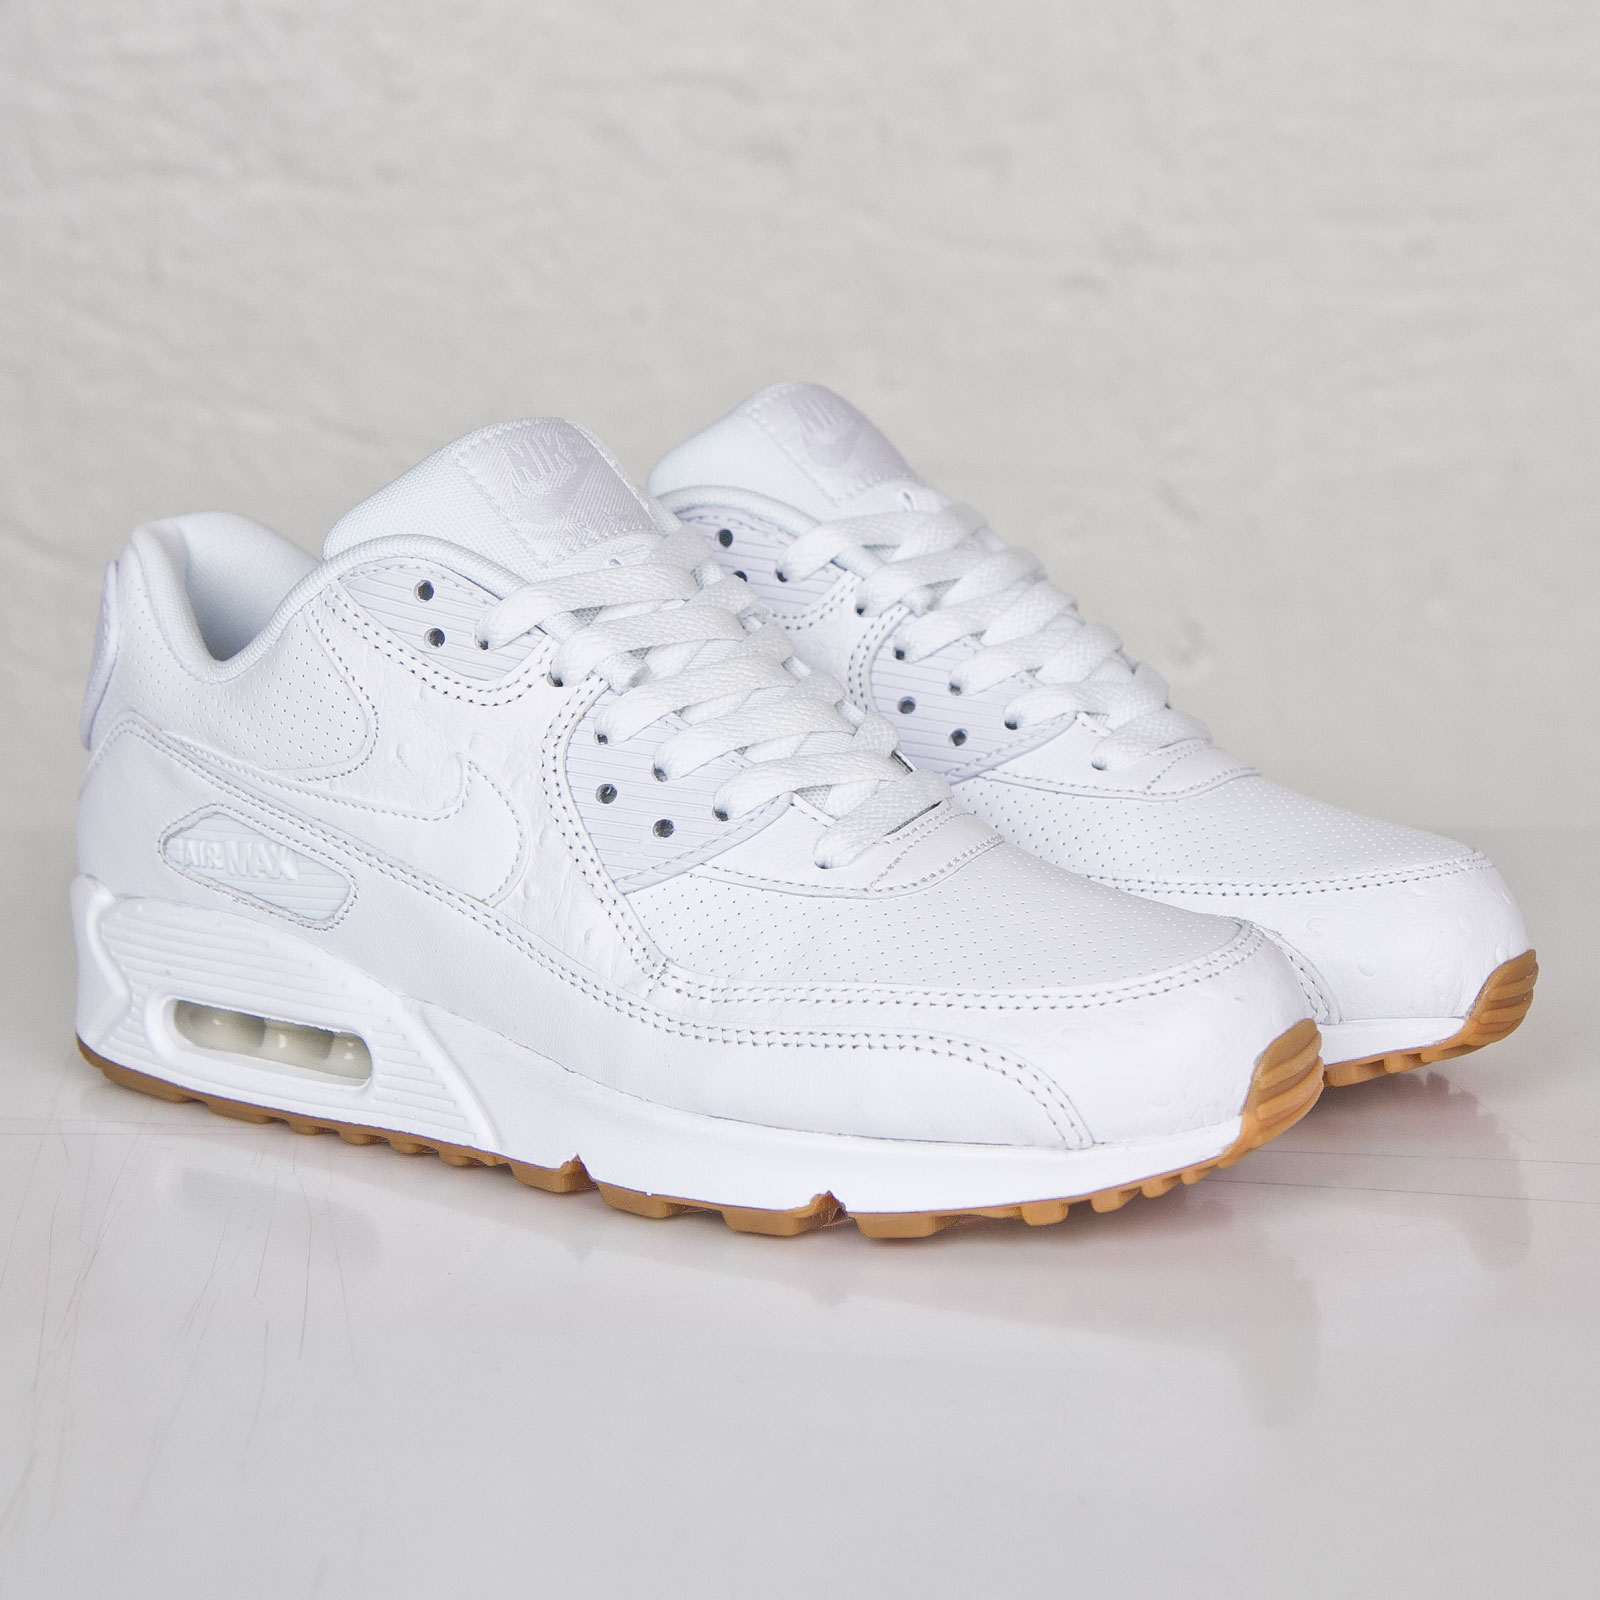 Nike Air Max 90 Leather PA - 705012-111 - Sneakersnstuff  68ba1f873